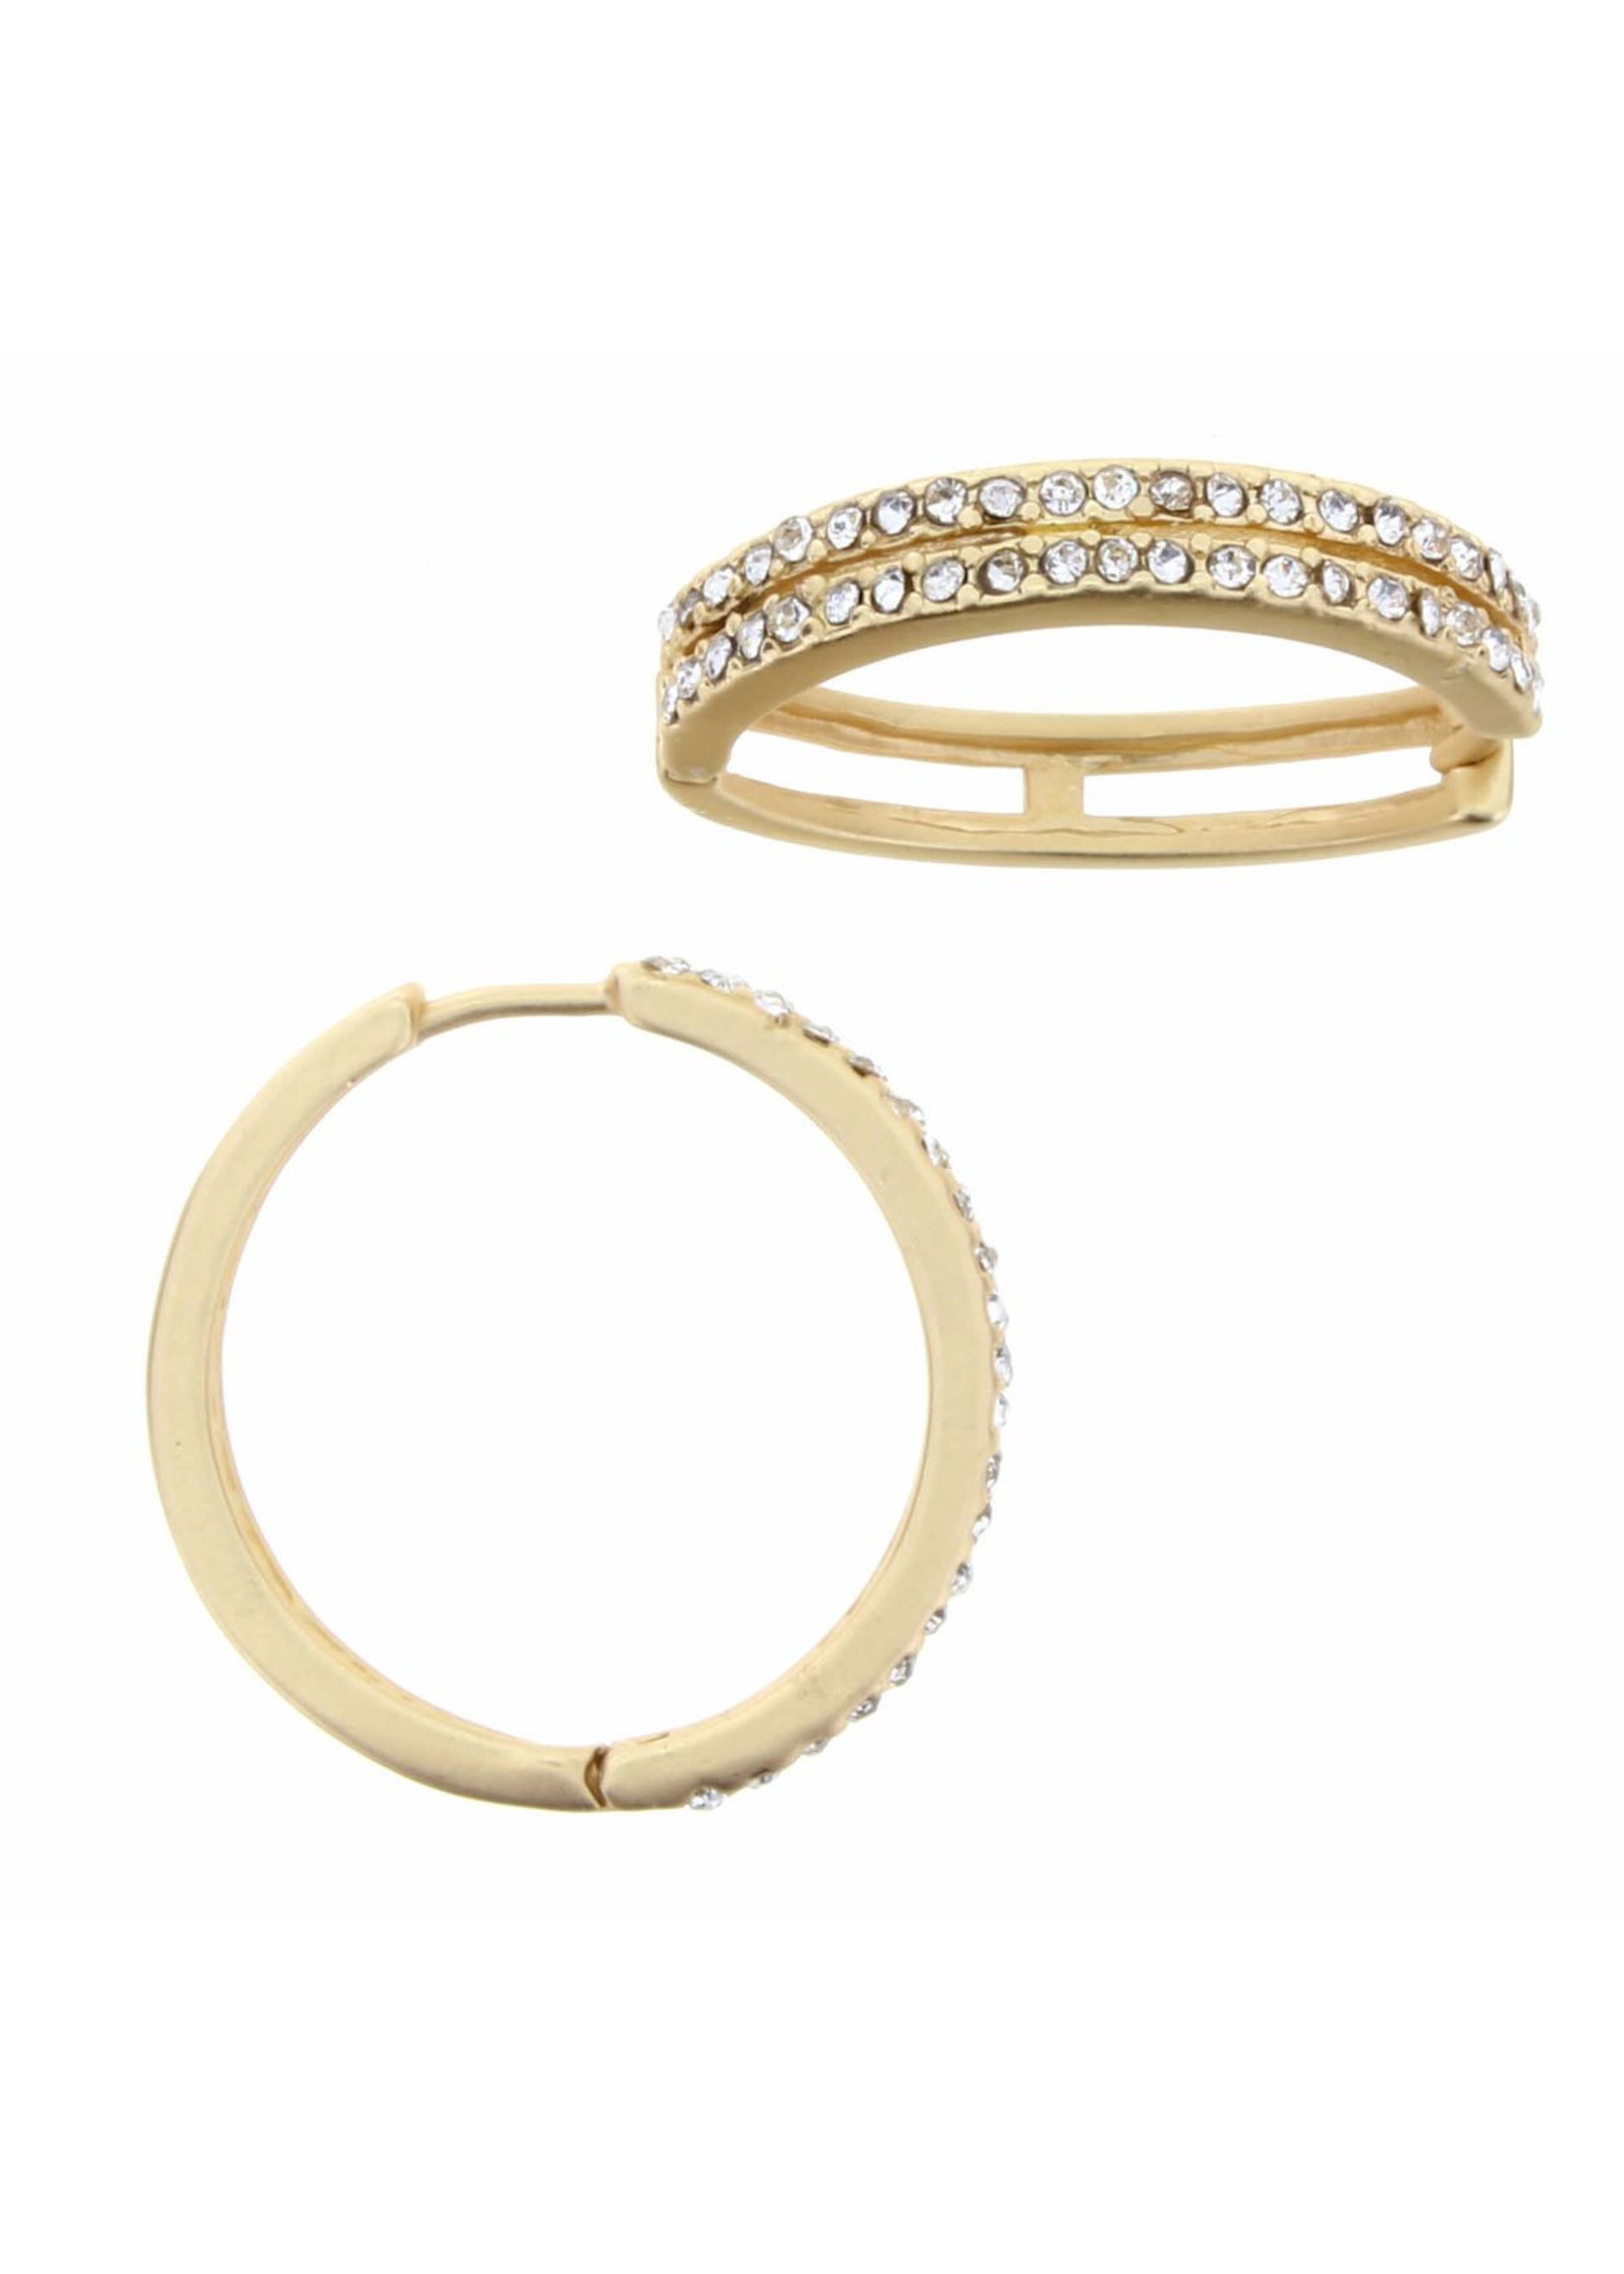 Jane Marie Gold Huggie With Clear Czech Inlay Earring